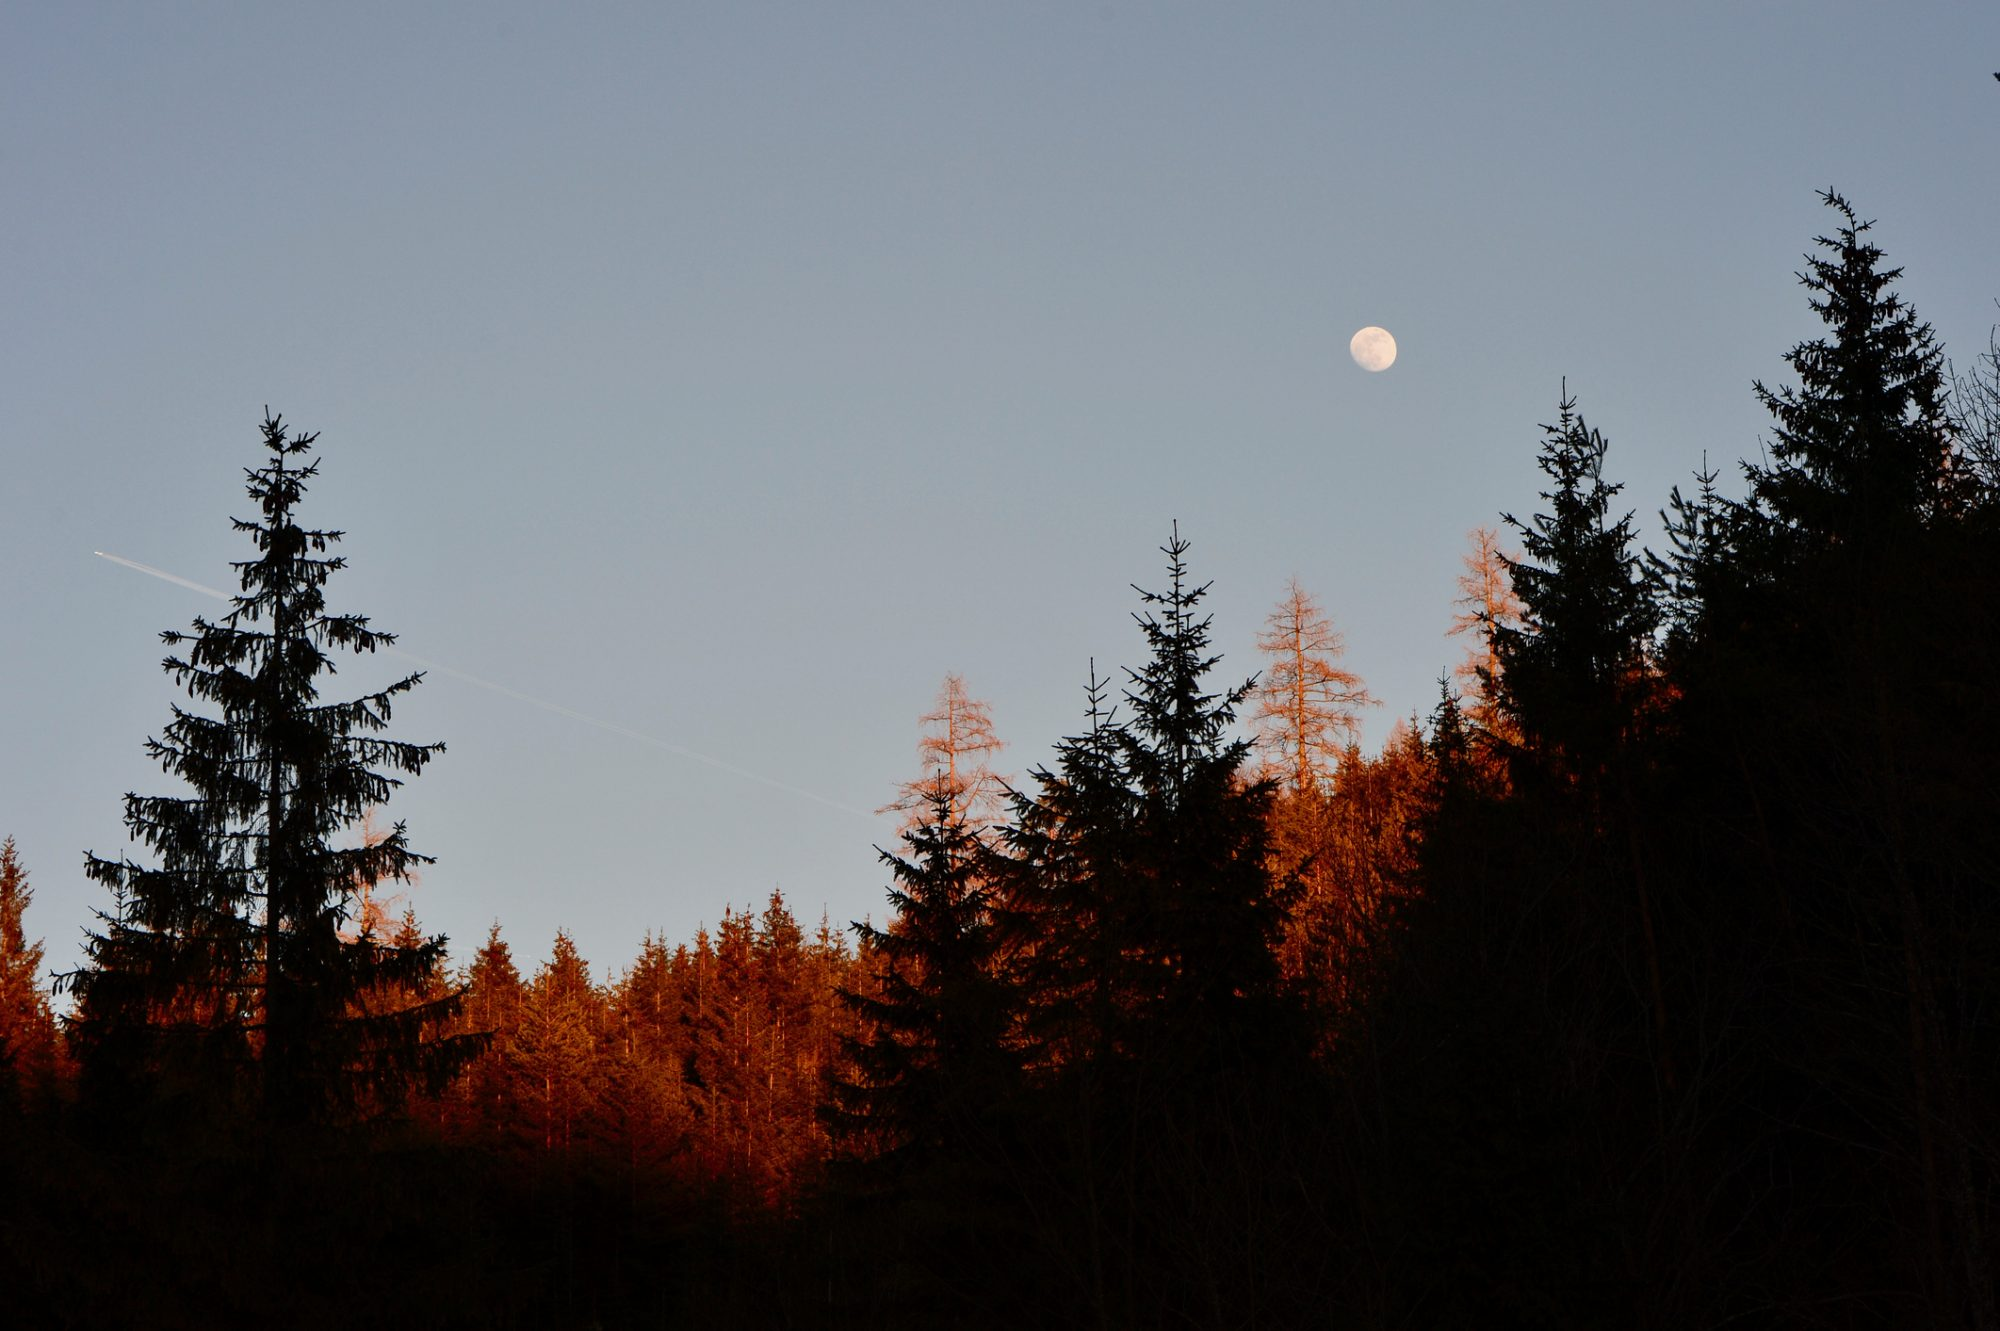 Low Angle View Of Silhouette Trees And Full Moon Against Sky During Autumn